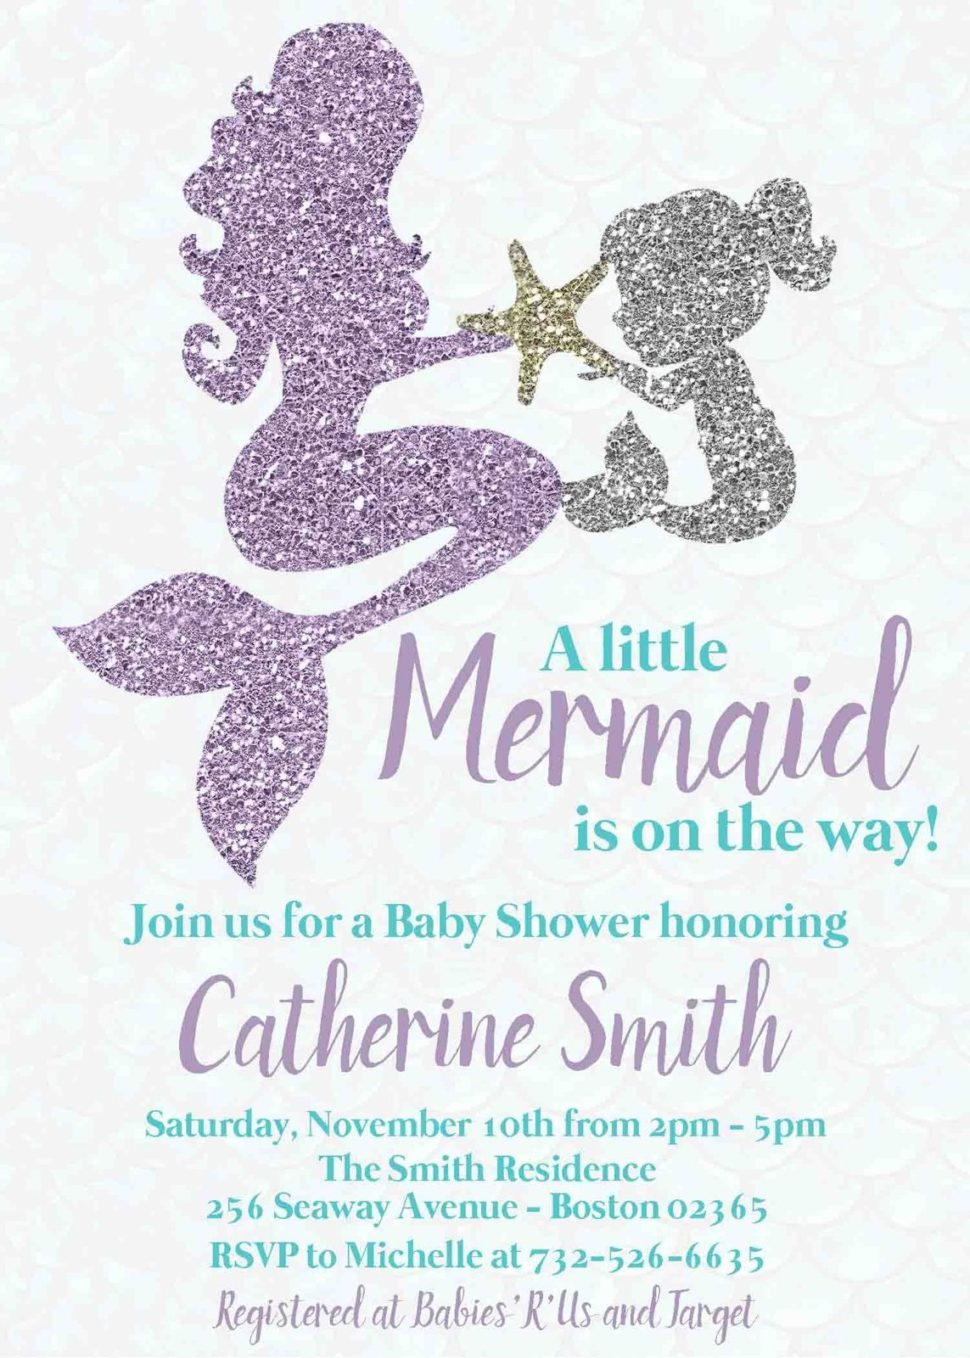 Medium Size of Baby Shower:63+ Delightful Cheap Baby Shower Invitations Image Inspirations Cheap Baby Shower Invitations Mermaid Baby Shower Invitation Mother Baby Under The Sea Party Teal Teal And Lavender Glitter Mermaid Mother And Child Baby Shower Invitation